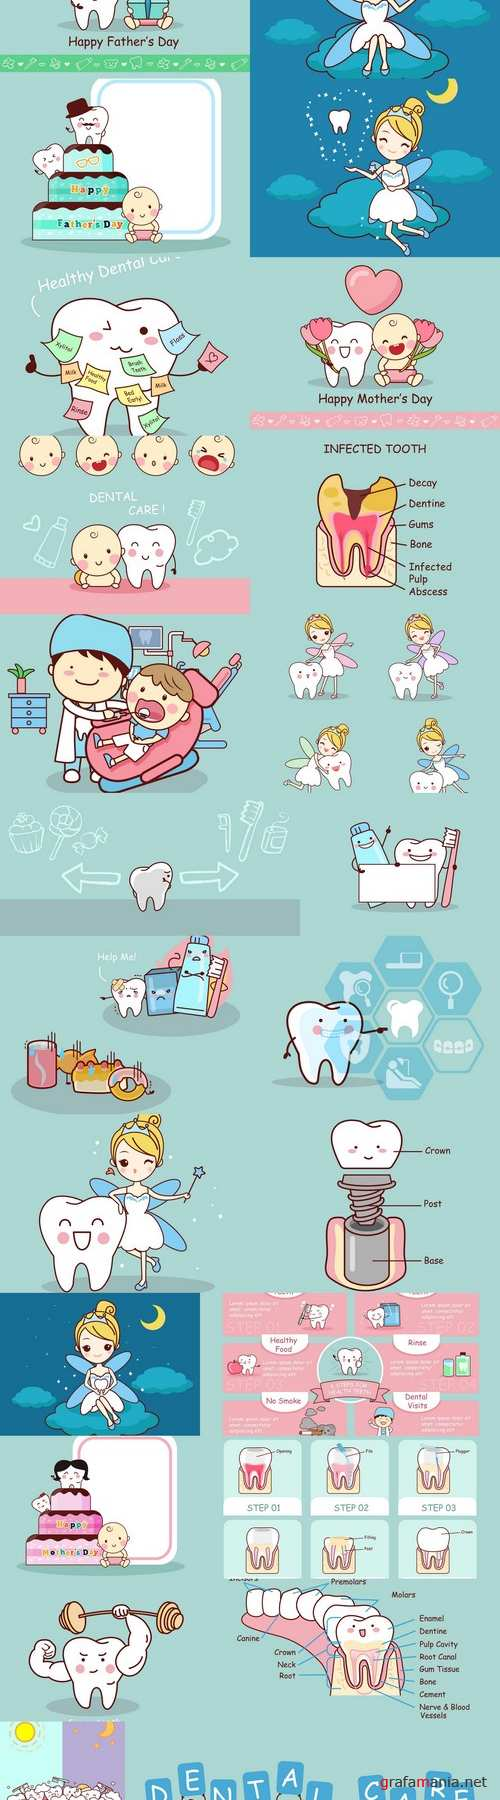 Cartoon tooth with tooth fairy 3